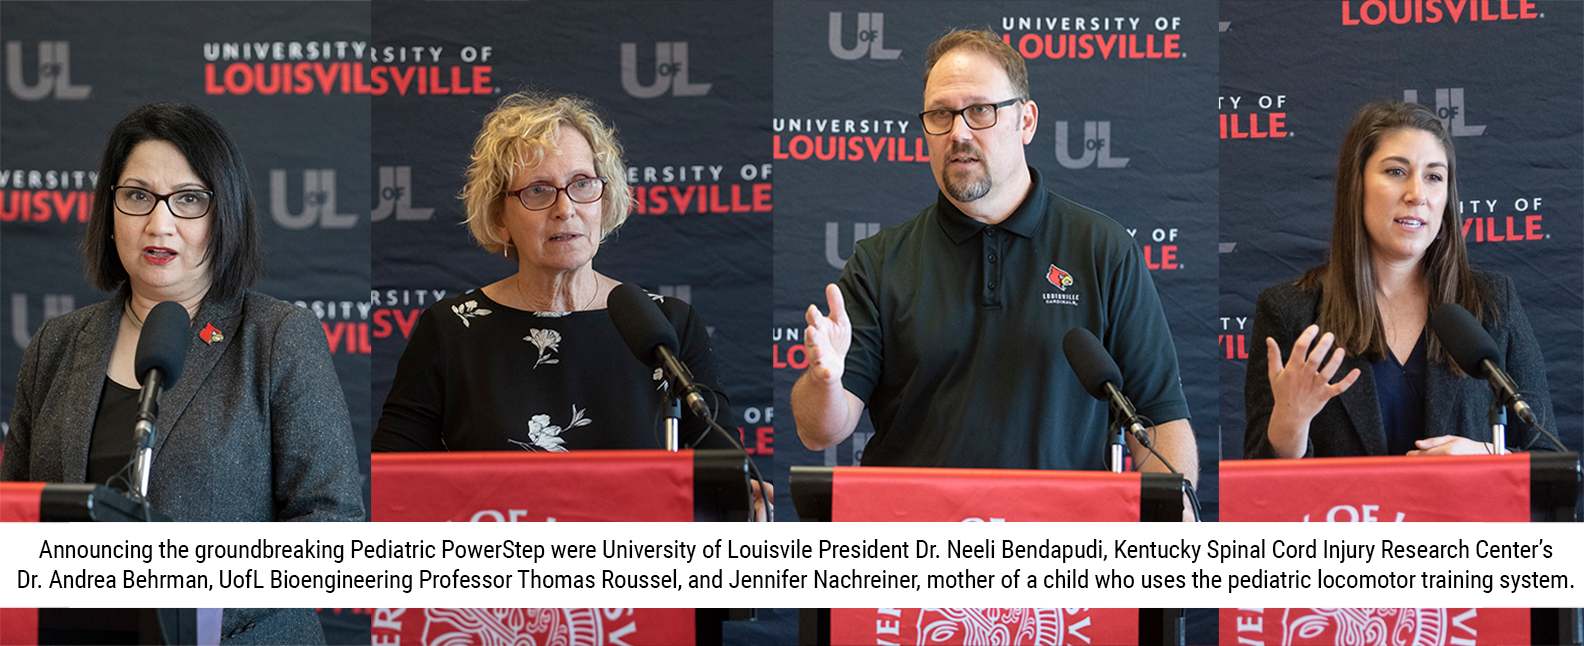 Announcing the groundbreaking Pediatric PowerStep were University of Louisvile President Dr. Neeli Bendapudi, Kentucky Spinal Cord Injury Research Center's Dr. Andrea Behrman, UofL Bioengineering Professor Thomas Roussel, and Jennifer Nachreiner, mother of a child who uses the pediatric locomotor training system.